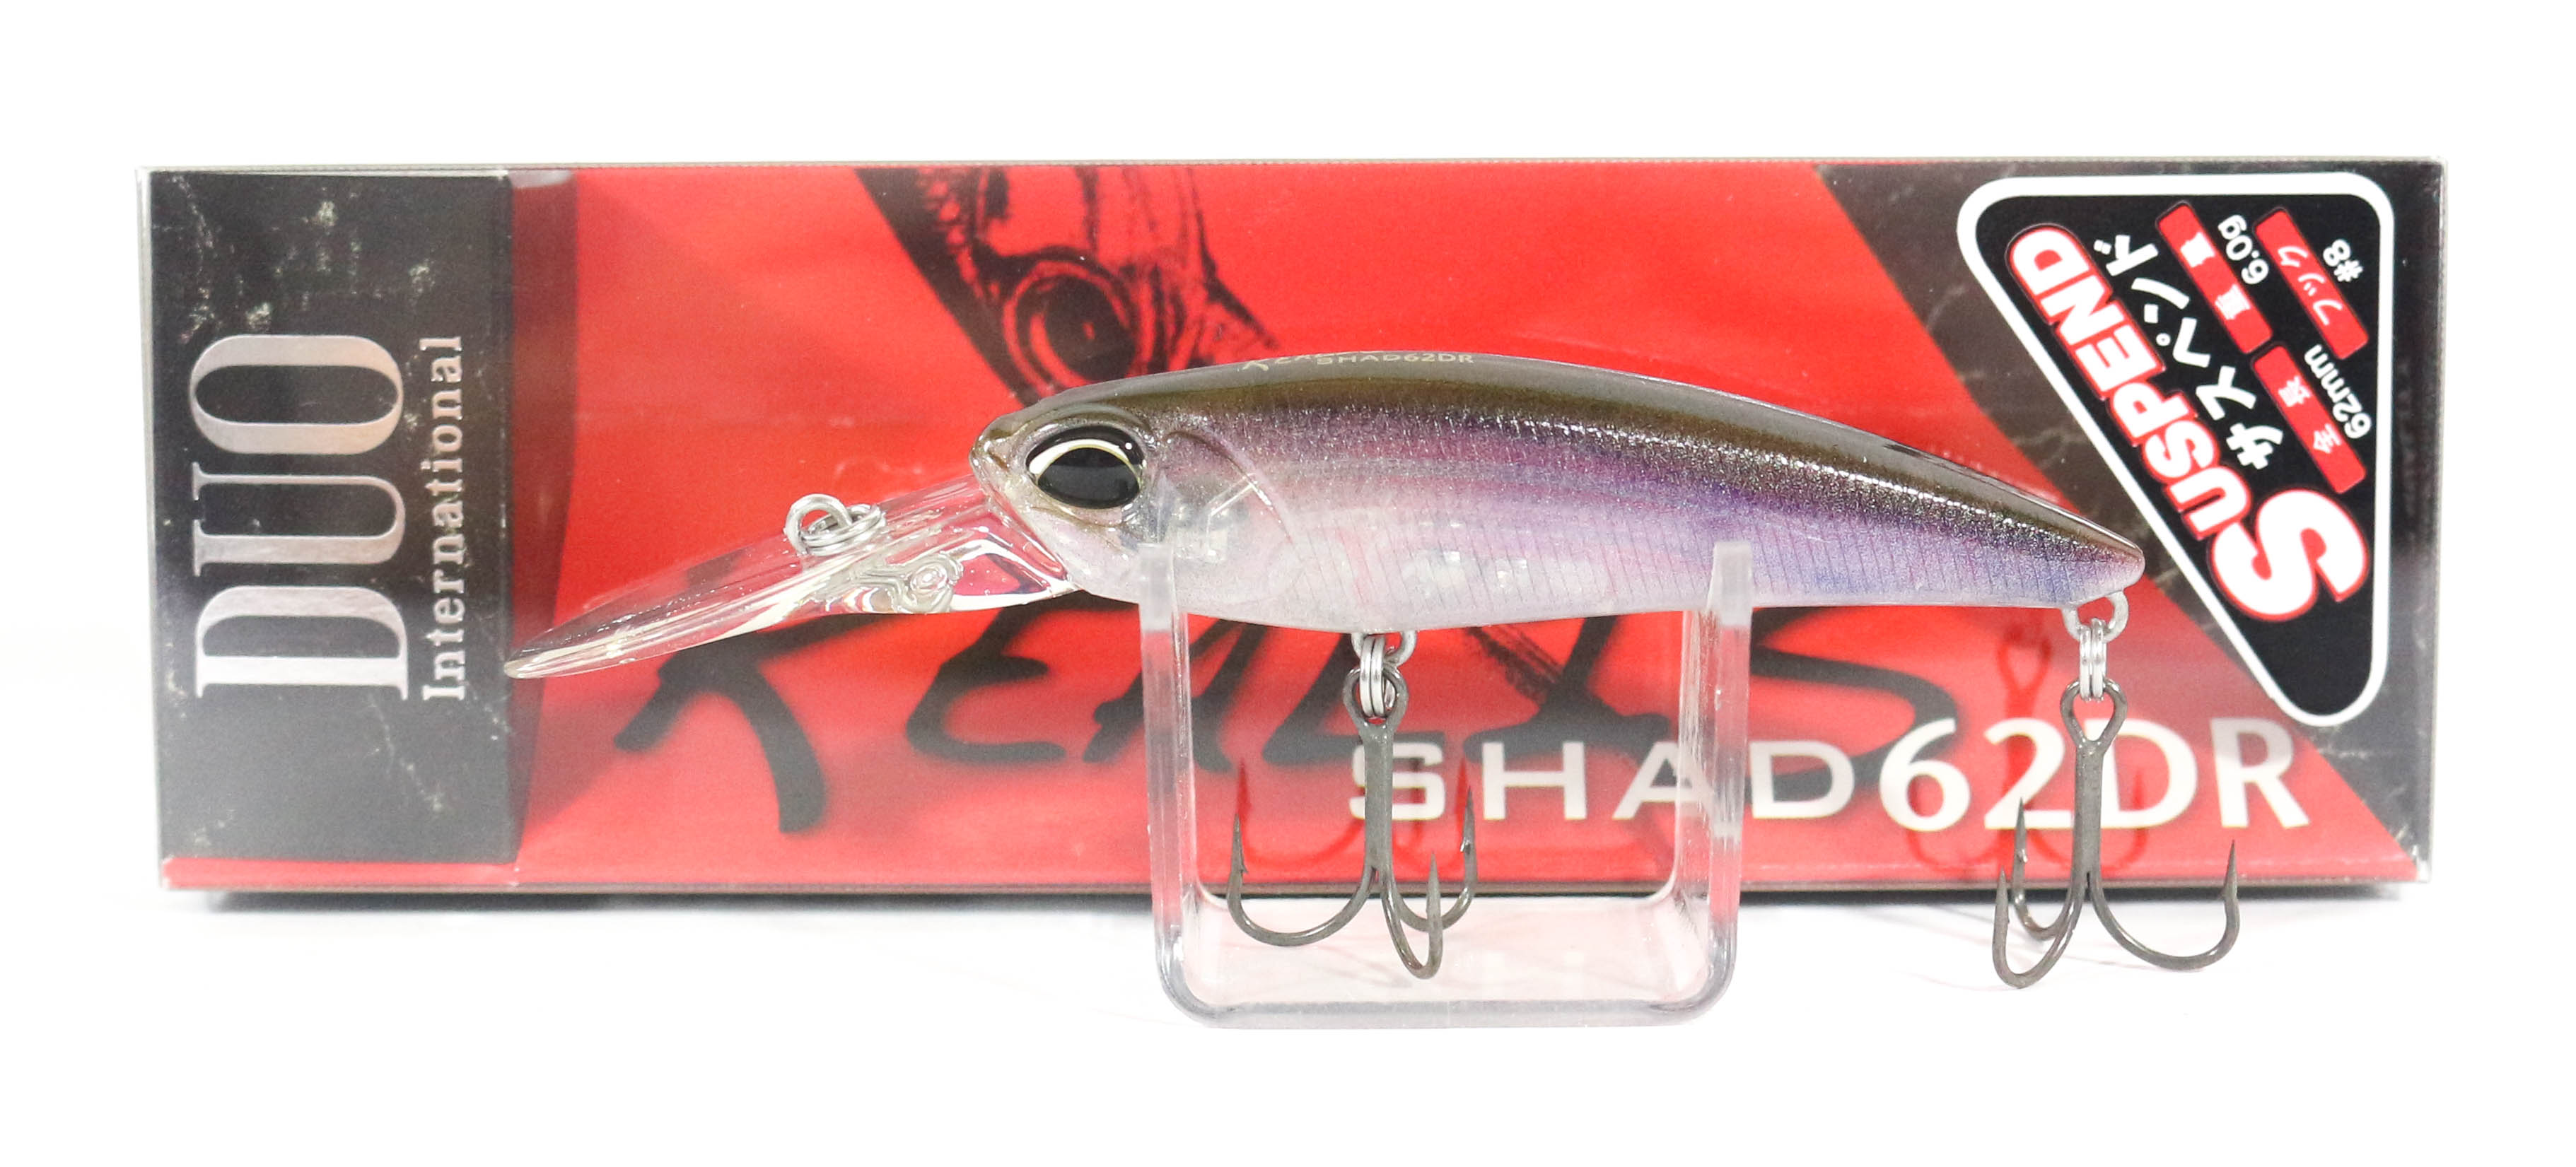 Duo Realis Shad 62 DR Suspend Lure CCC3813 (4401)